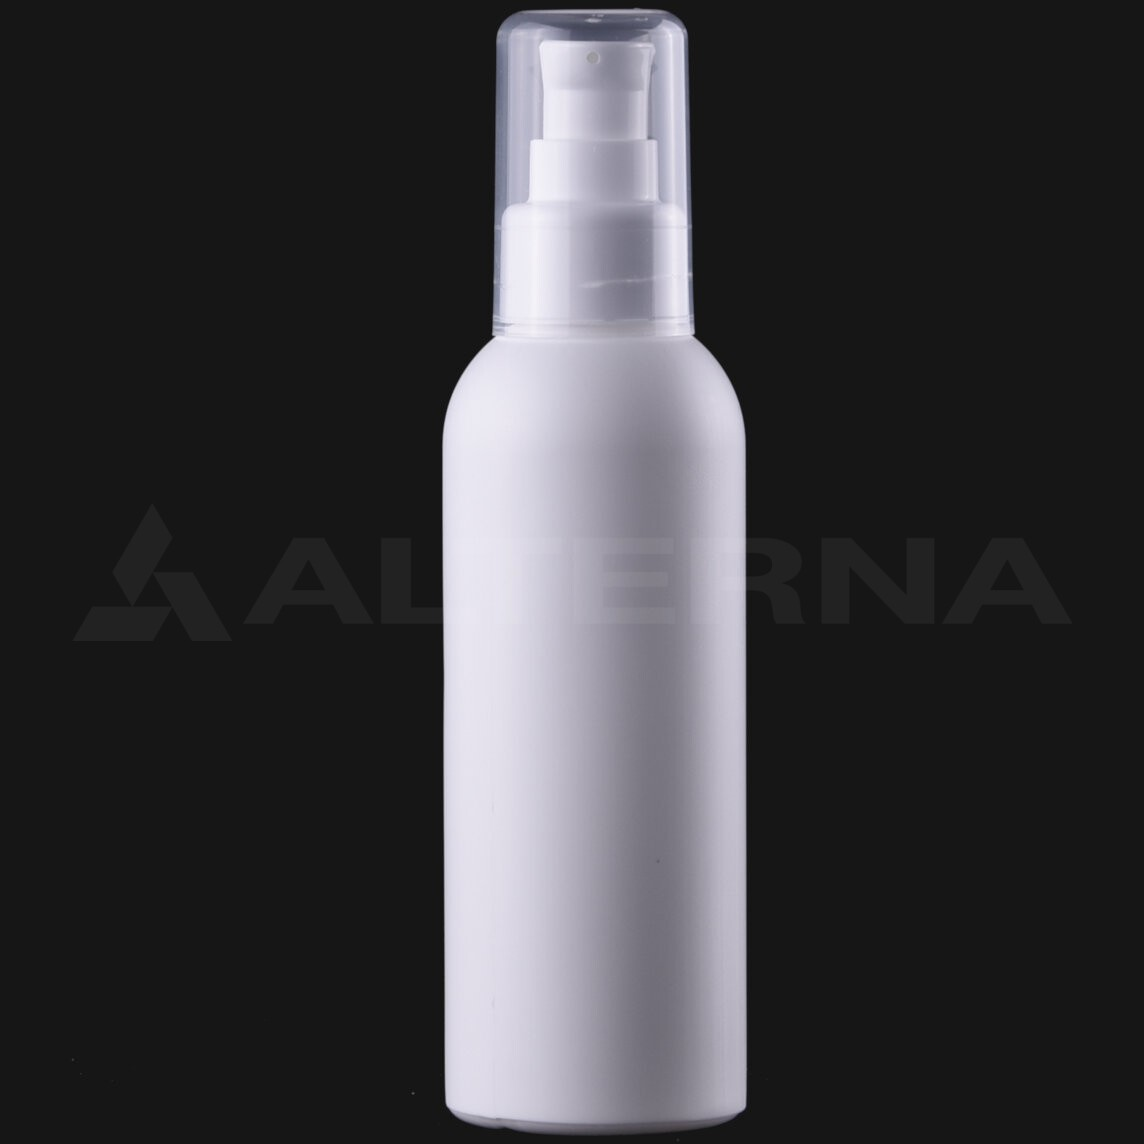 150 ml HDPE Bottle with 24 mm Lotion Pump